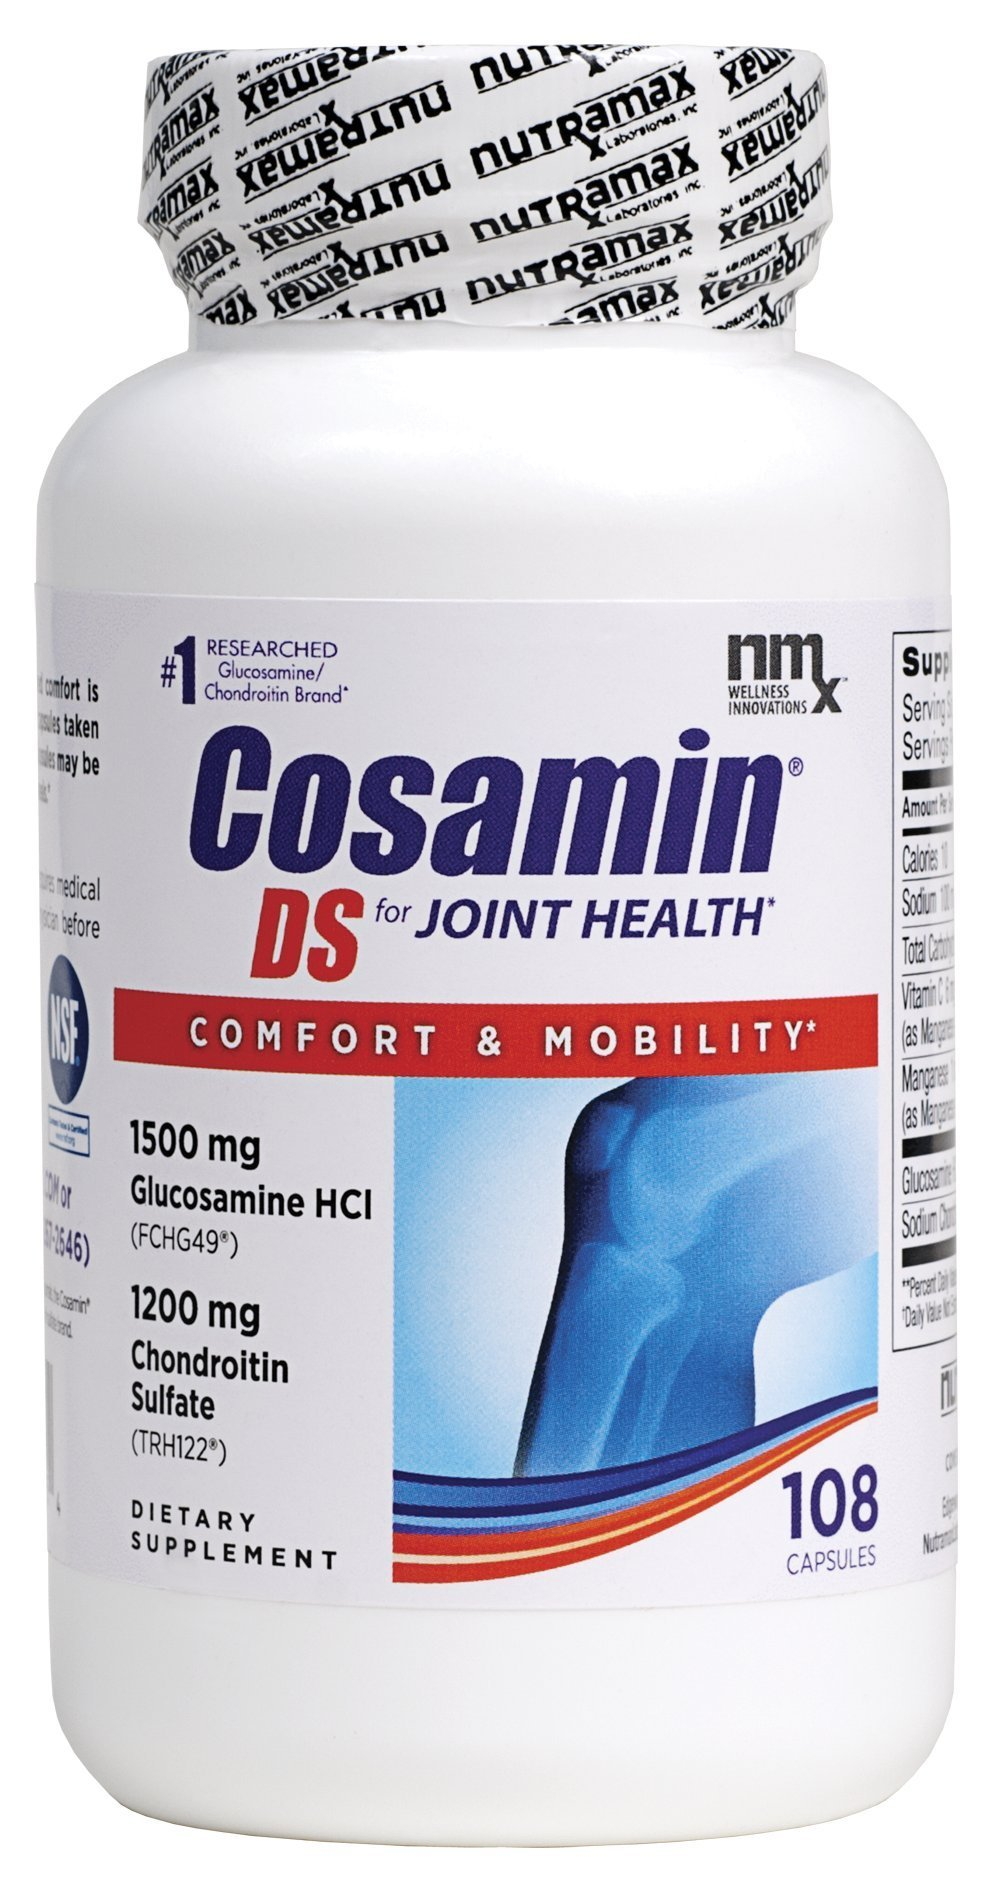 Cosamin DS For Joint Health Comfort & Mobility, 108 Capsules by Cosamin DS